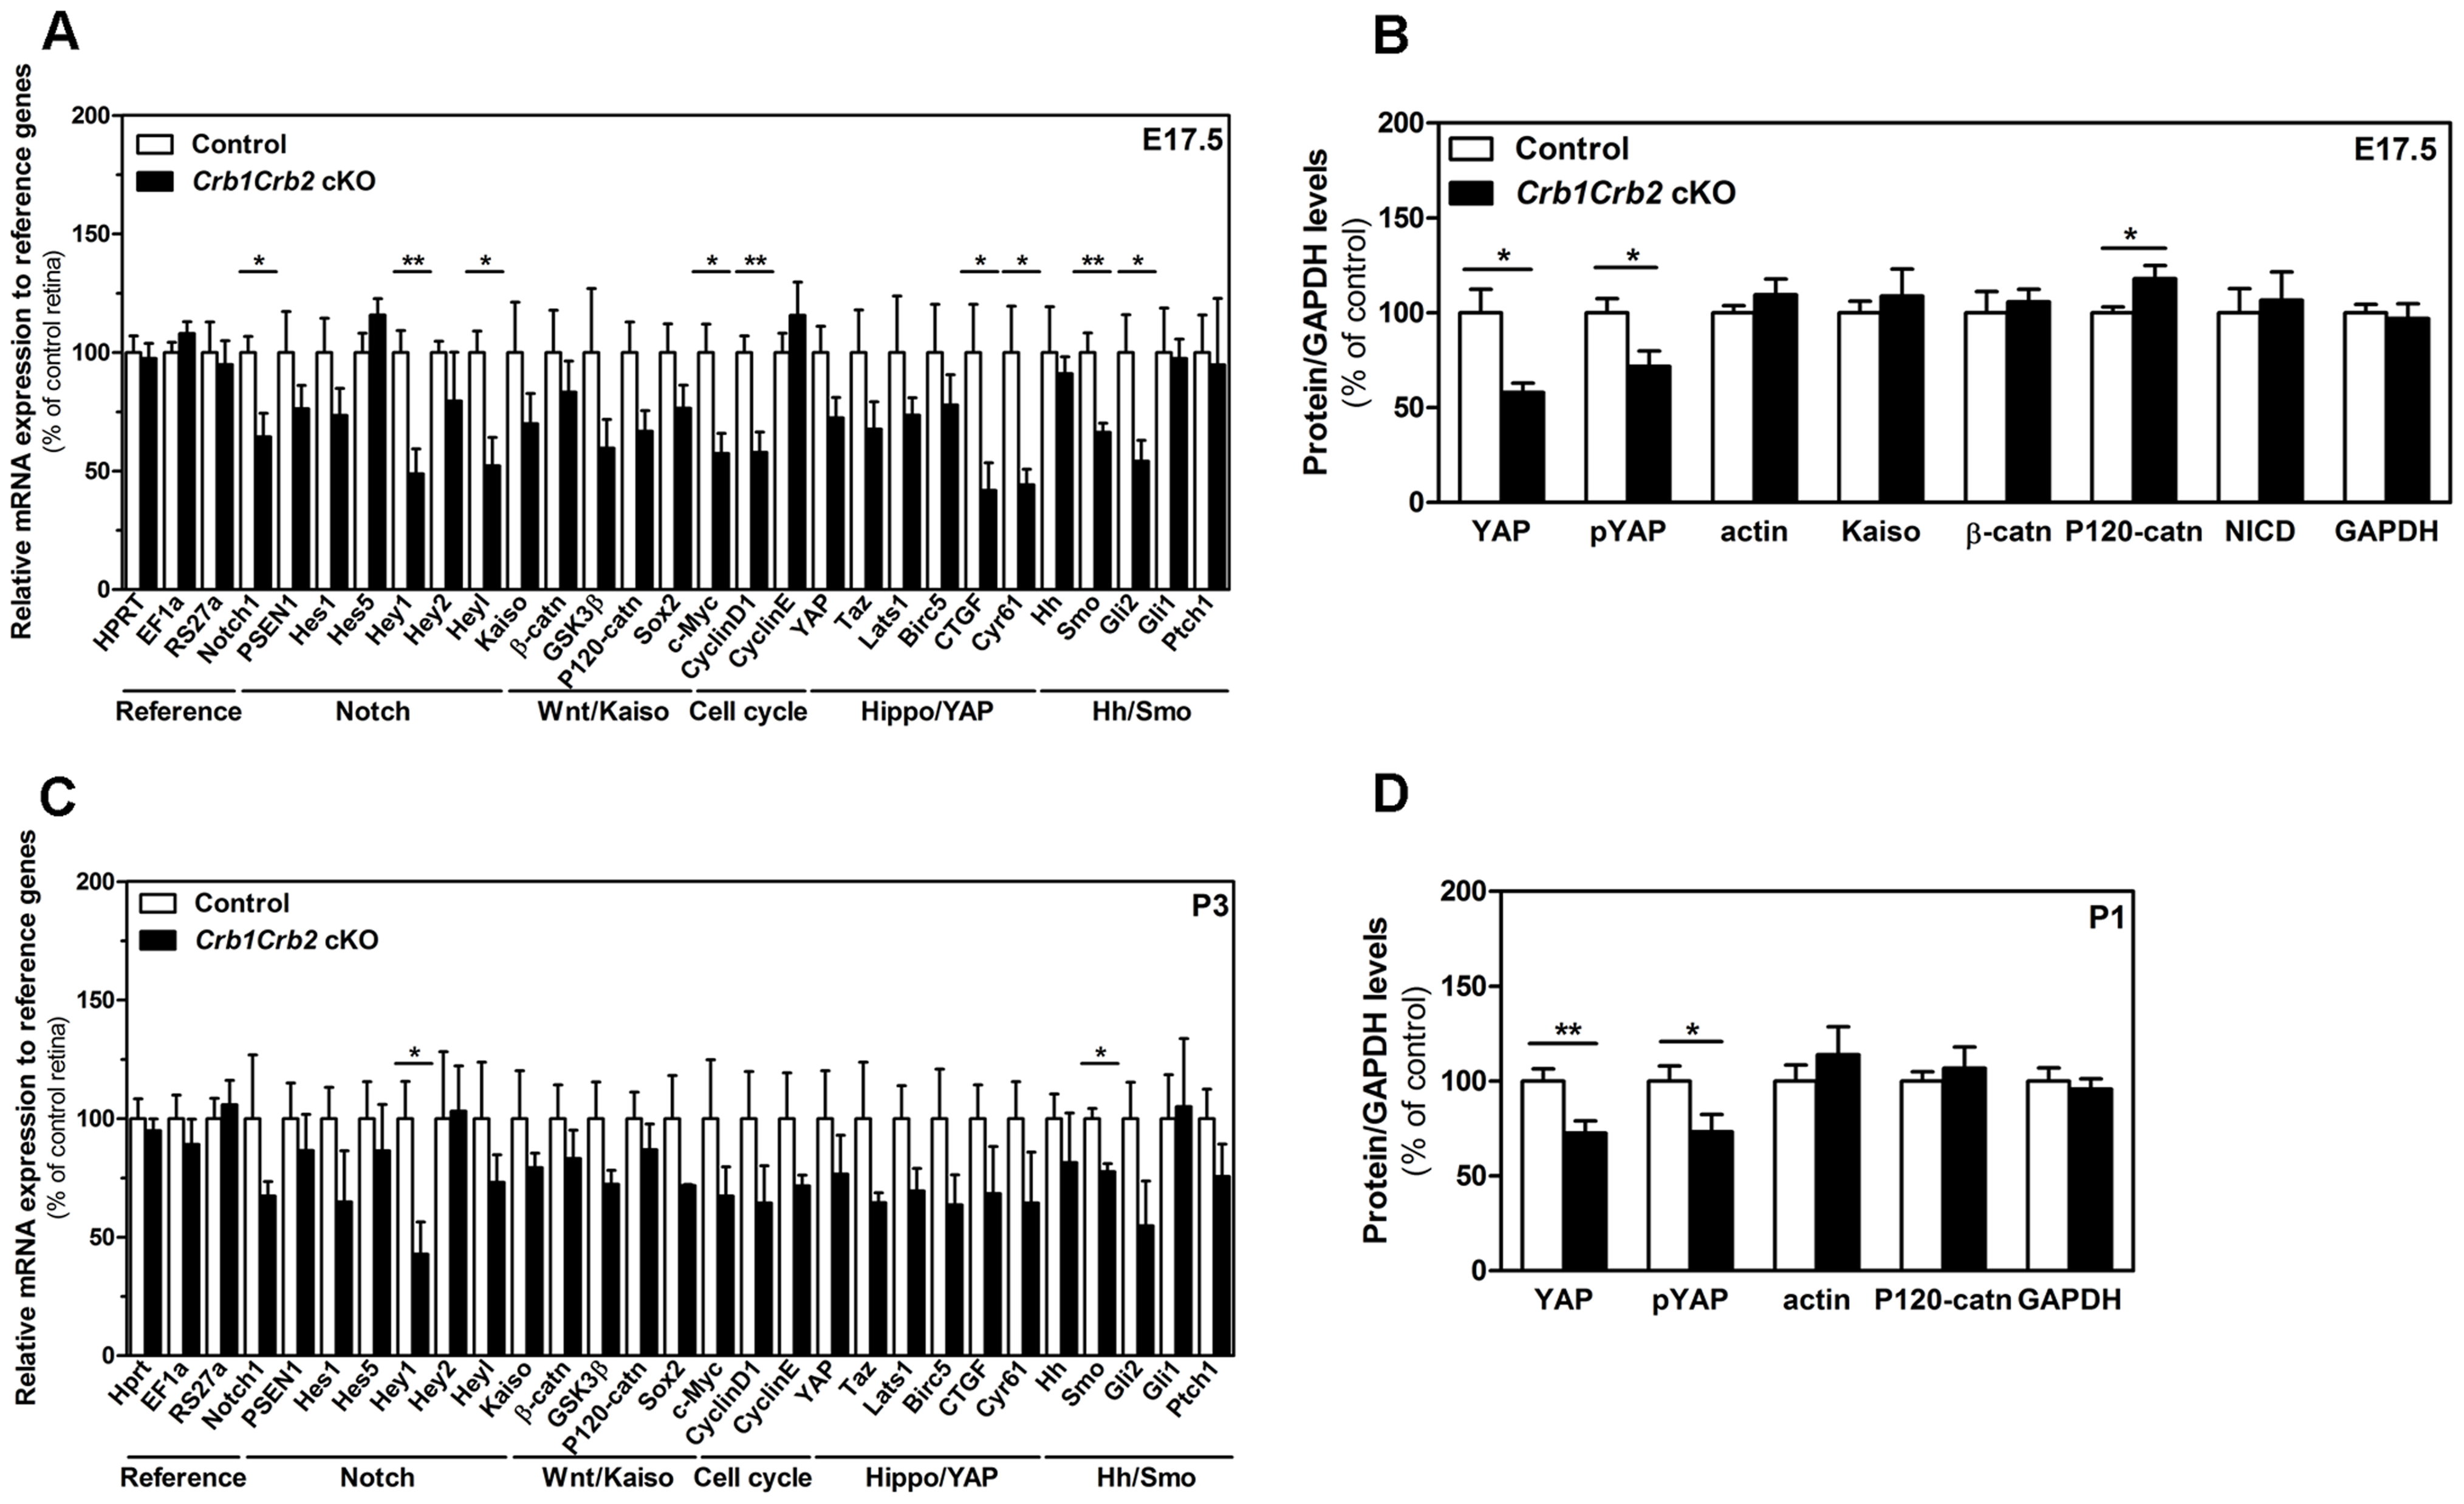 CRB1 and CRB2 acts on the proliferative signalling pathways.